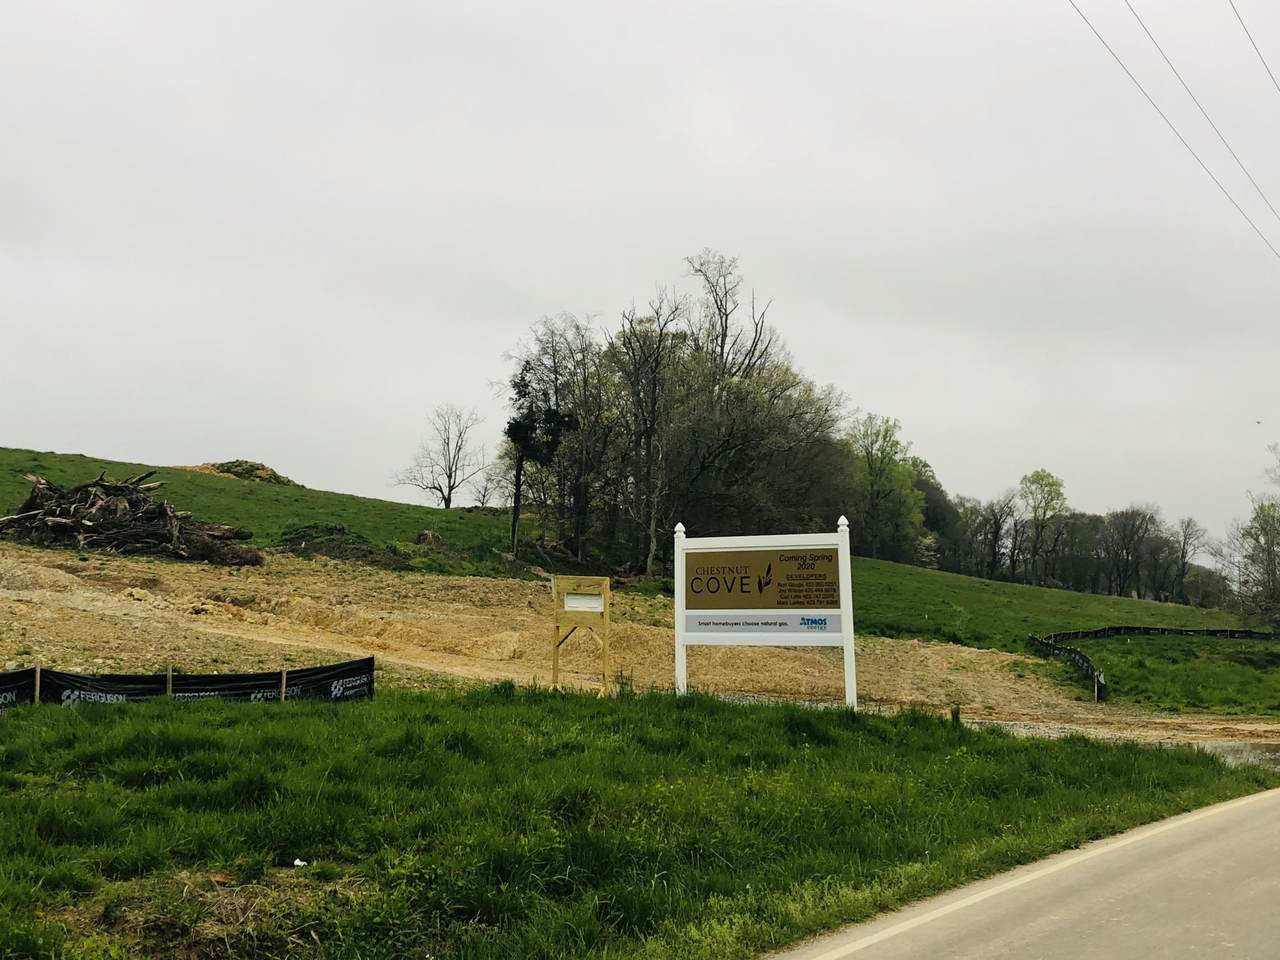 Tbd Boones Station Rd - Photo 1